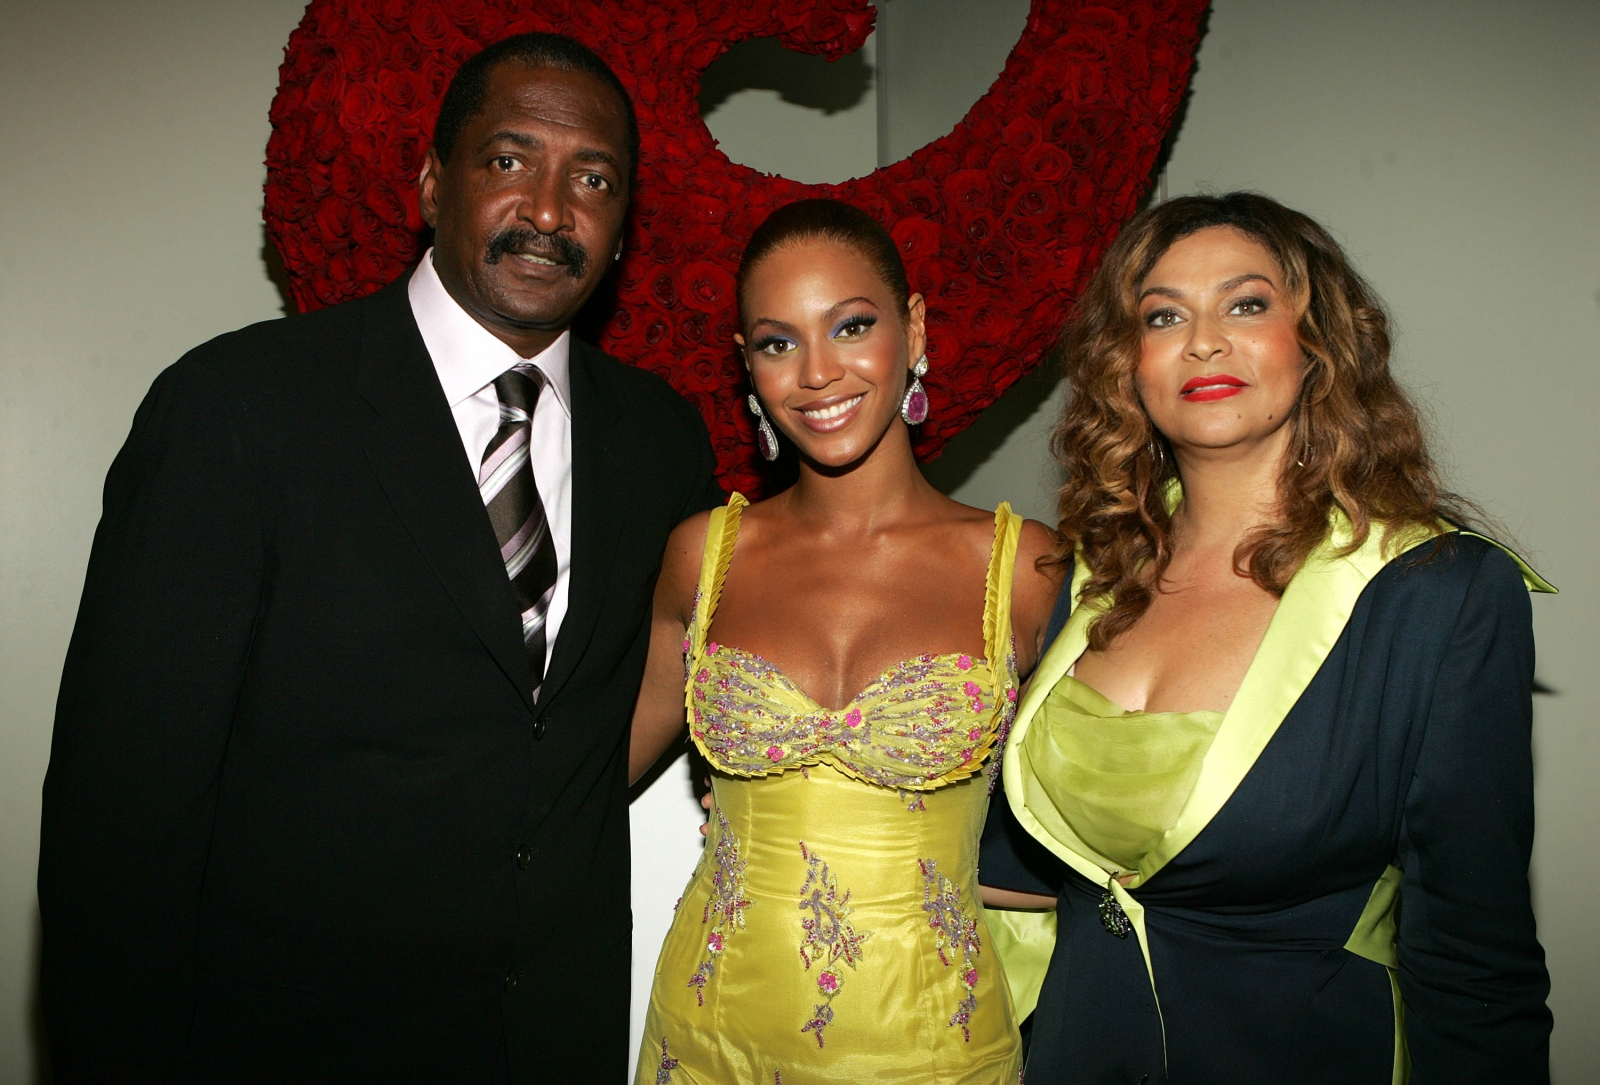 Beyoncé's Father Matthew Knowles Talks Racism in Revealing Interview